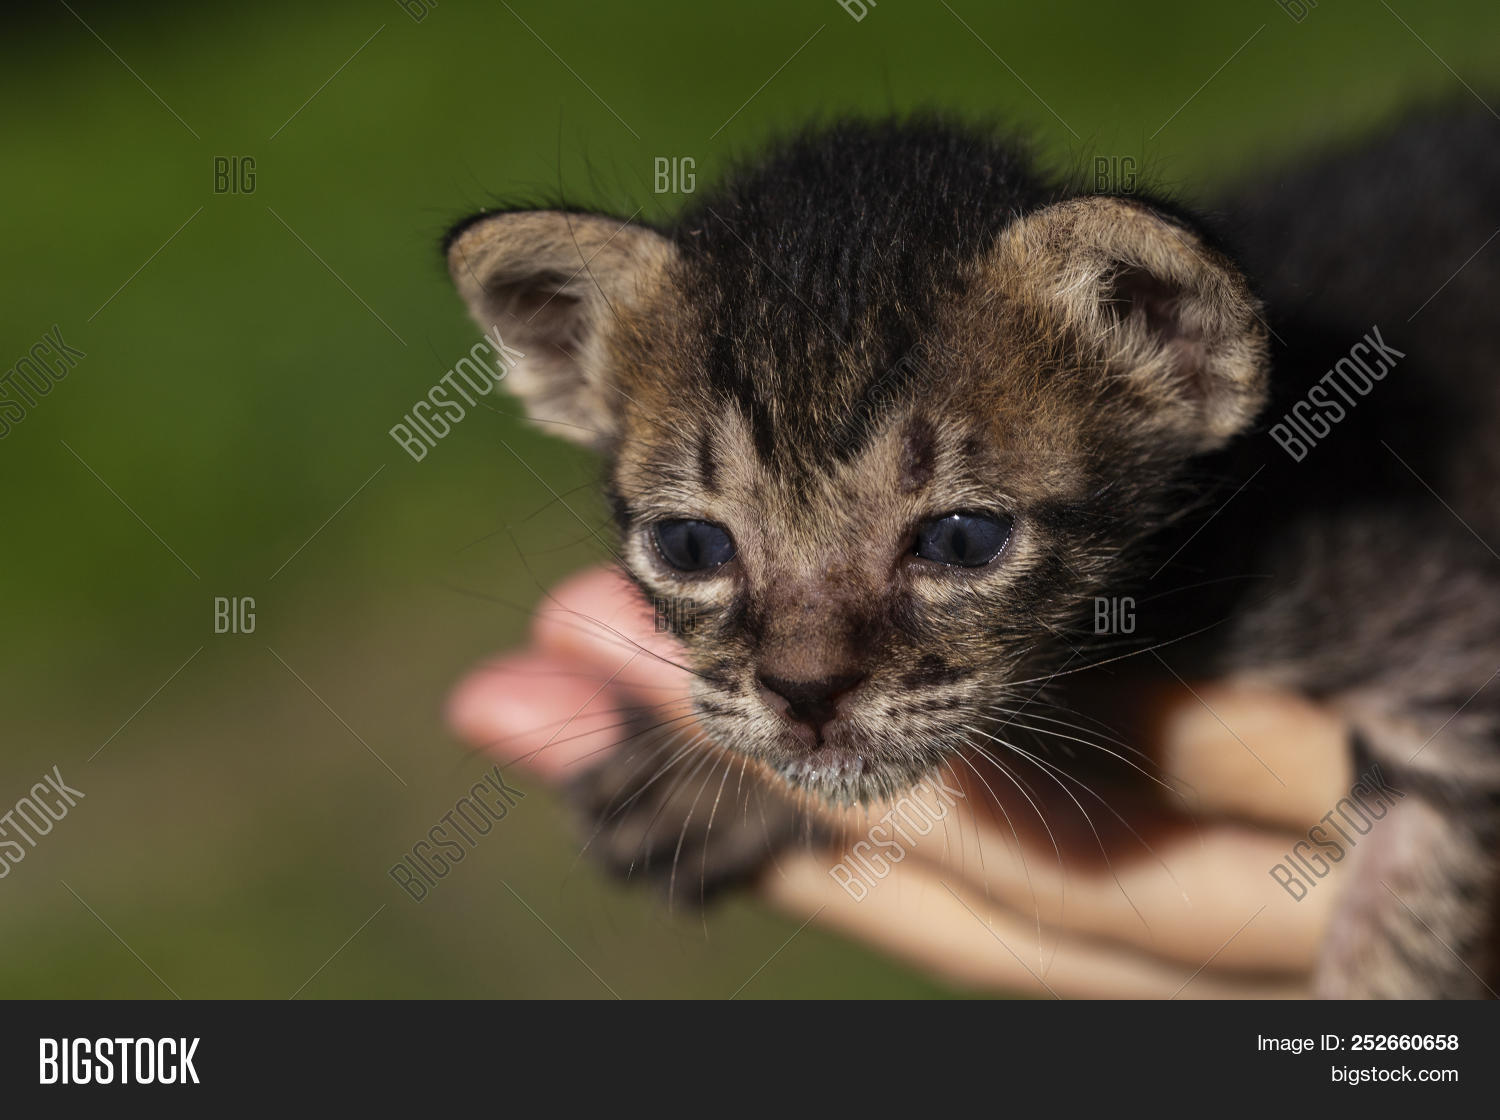 Cute Newborn Kitten On Image \u0026 Photo (Free Trial)